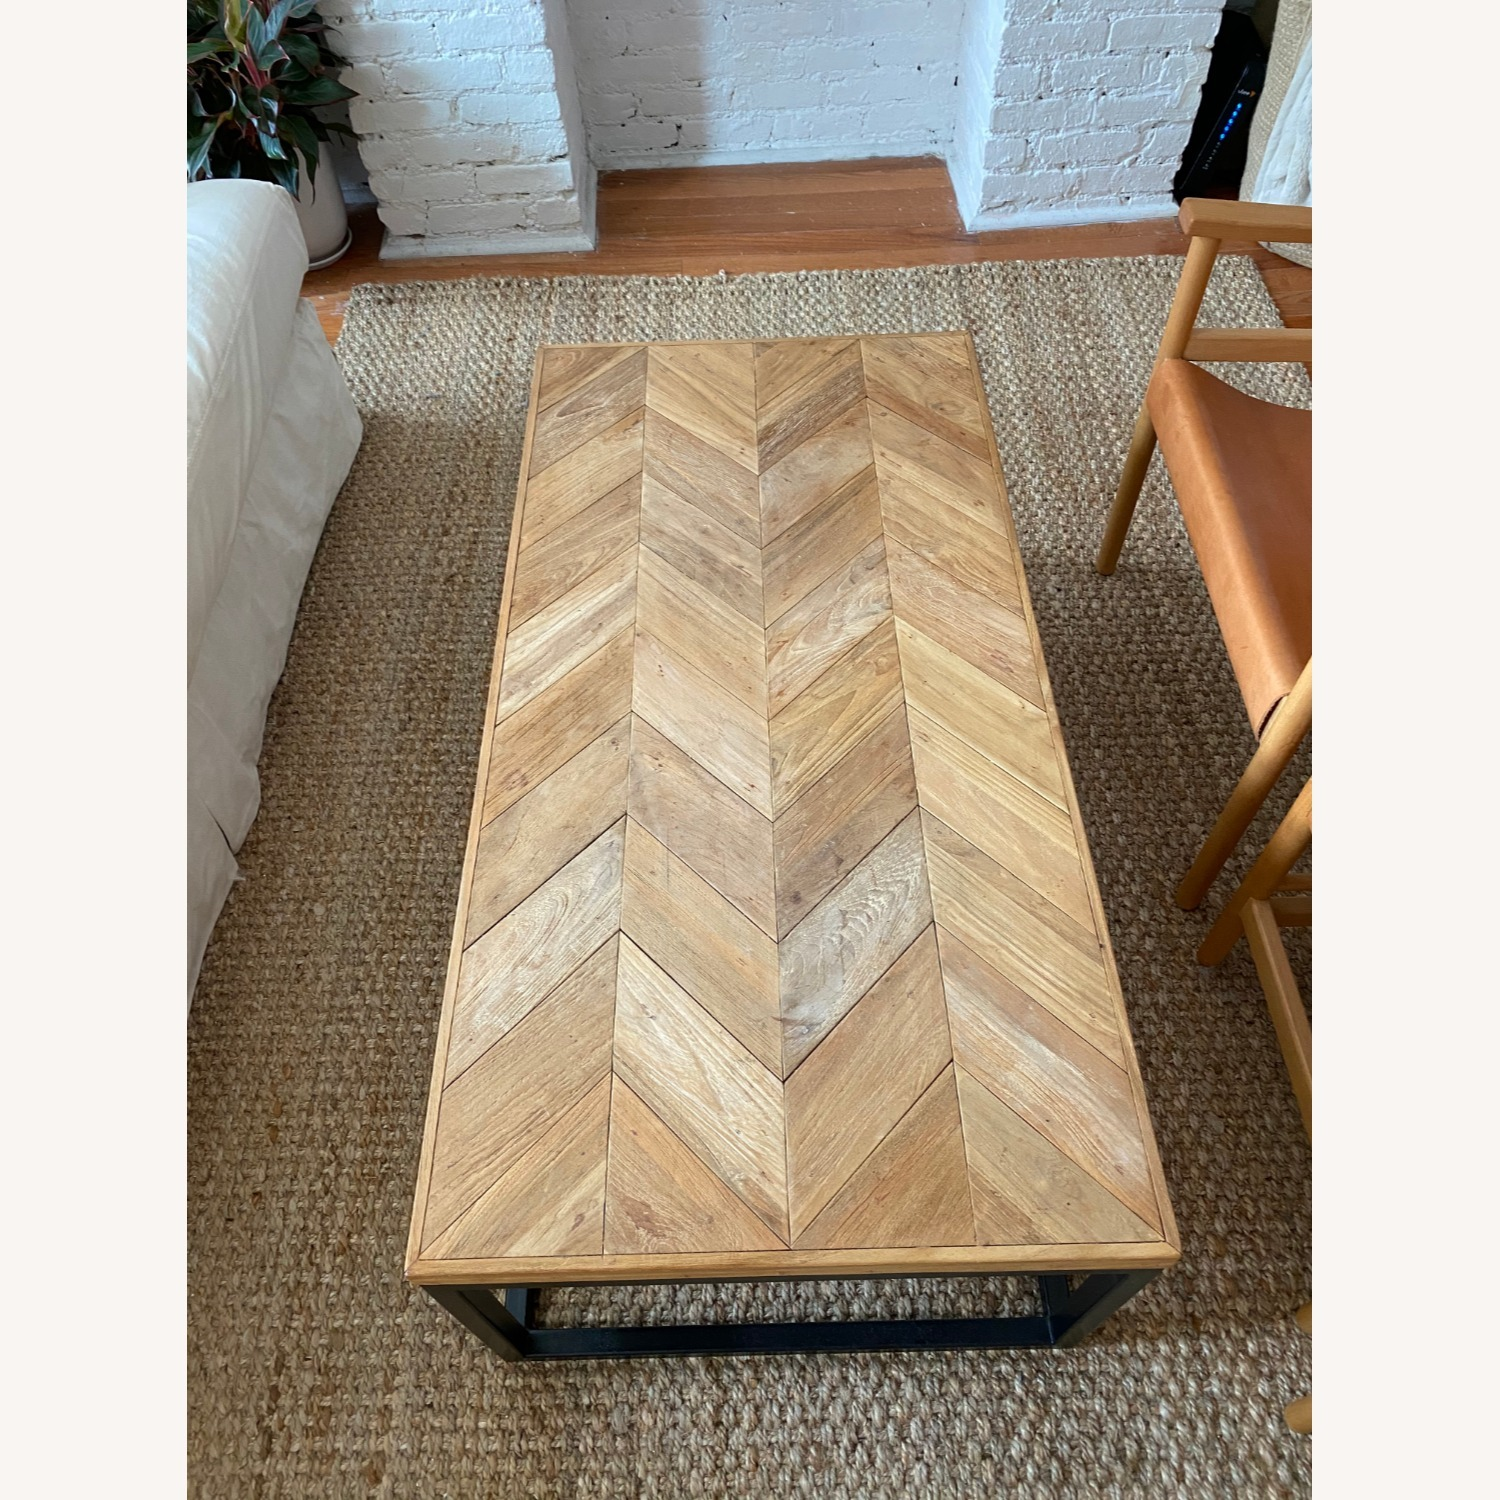 Crate & Barrel Mid Century Modern Coffee Table - image-3